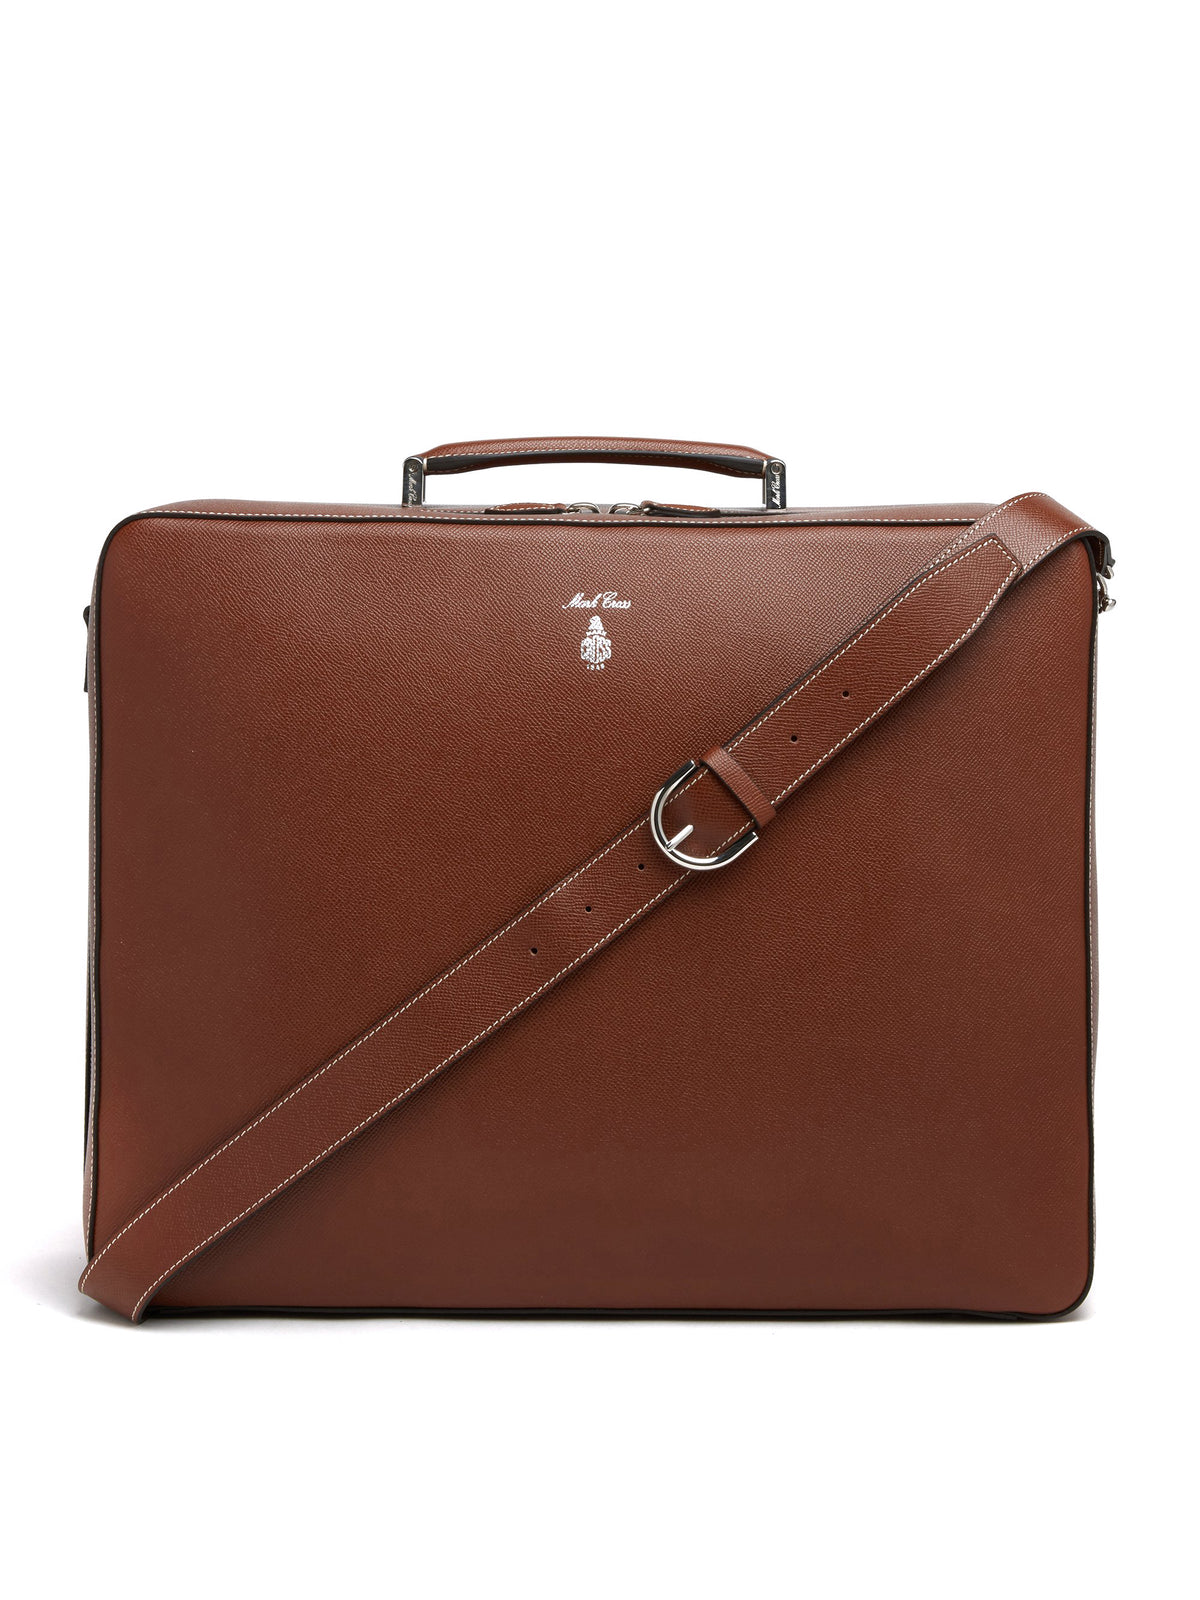 Mark Cross Baker Leather Overnight Bag Saffiano Acorn Front